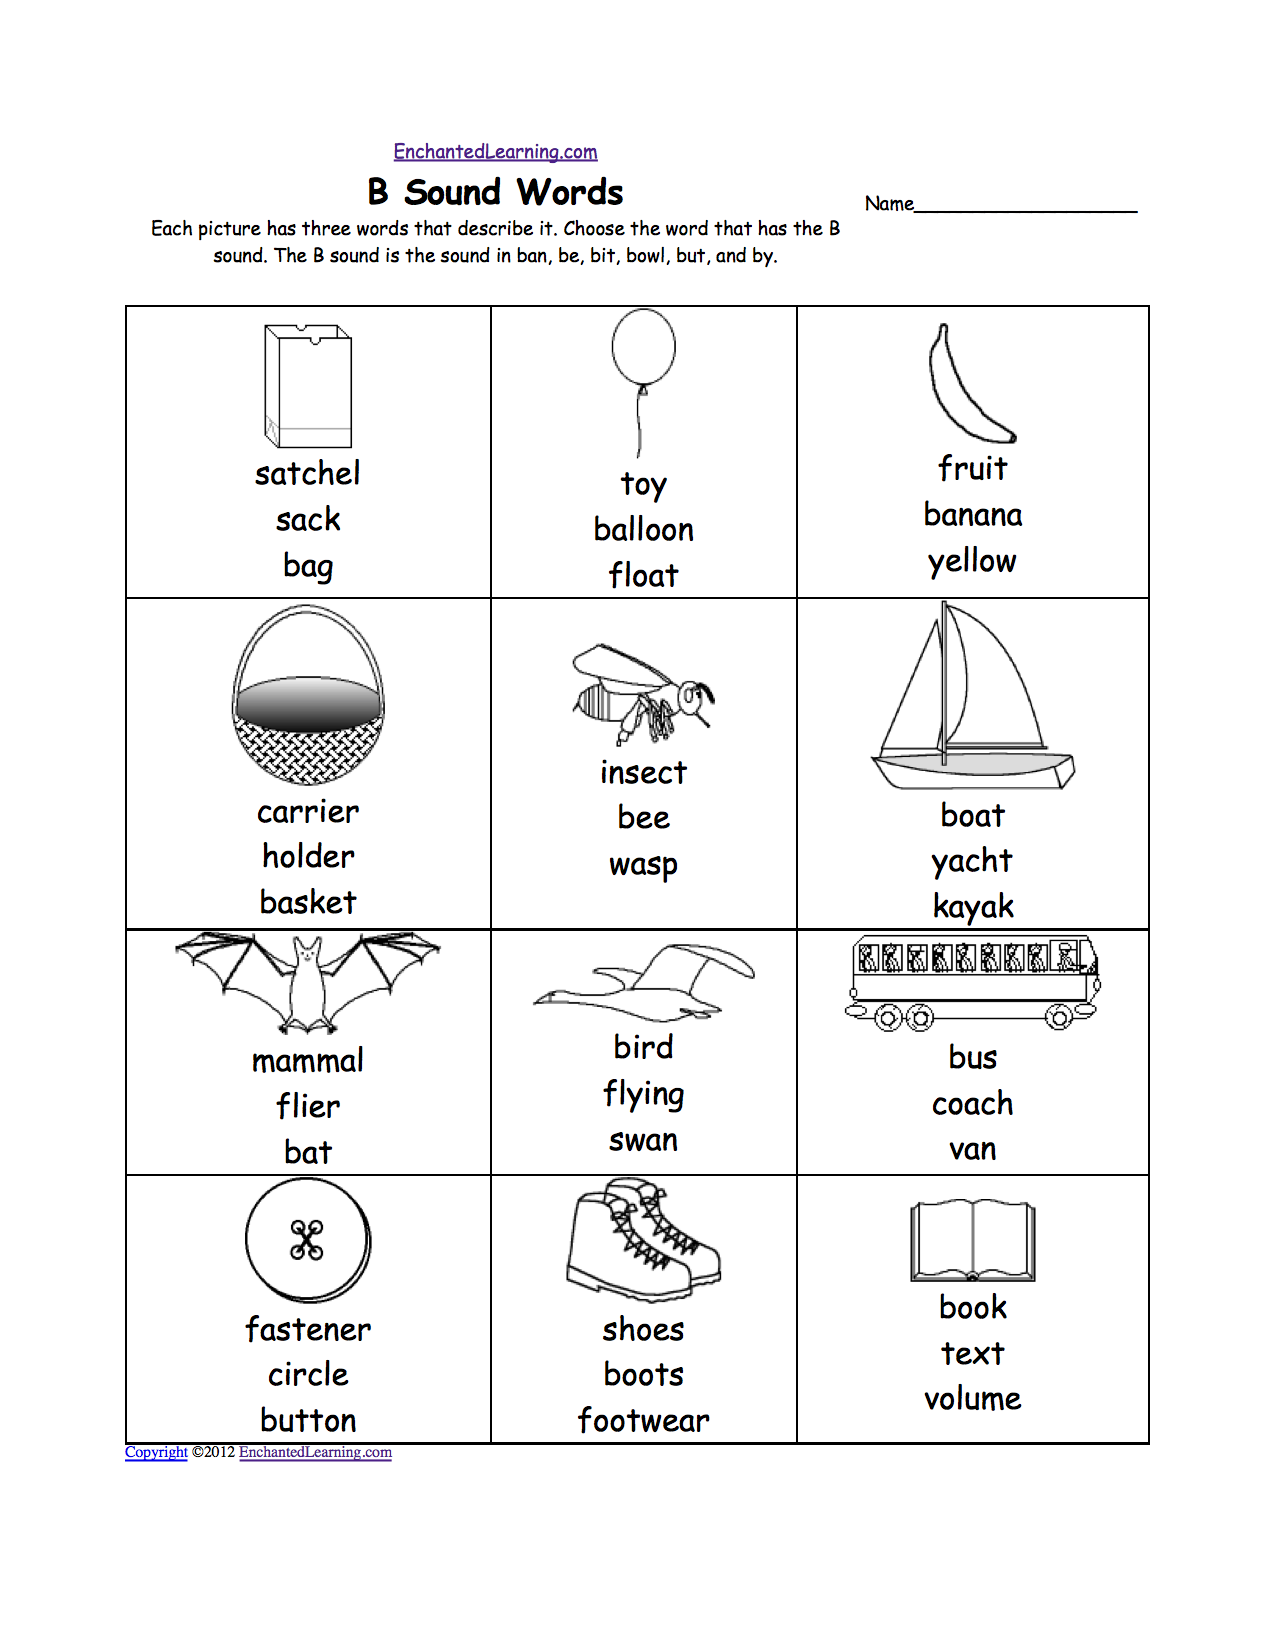 Weirdmailus  Winsome Phonics Worksheets Multiple Choice Worksheets To Print  With Glamorous Quotbquot Sound Phonics Worksheet Multiple Choice Each Picture Has Three Words That Describe It Choose The Word That Has A Quotbquot Sound The Quotbquot Sound Is The Sound  With Delightful Life Goal Setting Worksheet Also Th Grade Math Worksheets Fractions In Addition Printable Longitude And Latitude Worksheets And Regrouping Addition Worksheet As Well As Adding  Digit Numbers With Regrouping Worksheets Additionally Algebraic Expressions Worksheets With Answers From Enchantedlearningcom With Weirdmailus  Glamorous Phonics Worksheets Multiple Choice Worksheets To Print  With Delightful Quotbquot Sound Phonics Worksheet Multiple Choice Each Picture Has Three Words That Describe It Choose The Word That Has A Quotbquot Sound The Quotbquot Sound Is The Sound  And Winsome Life Goal Setting Worksheet Also Th Grade Math Worksheets Fractions In Addition Printable Longitude And Latitude Worksheets From Enchantedlearningcom